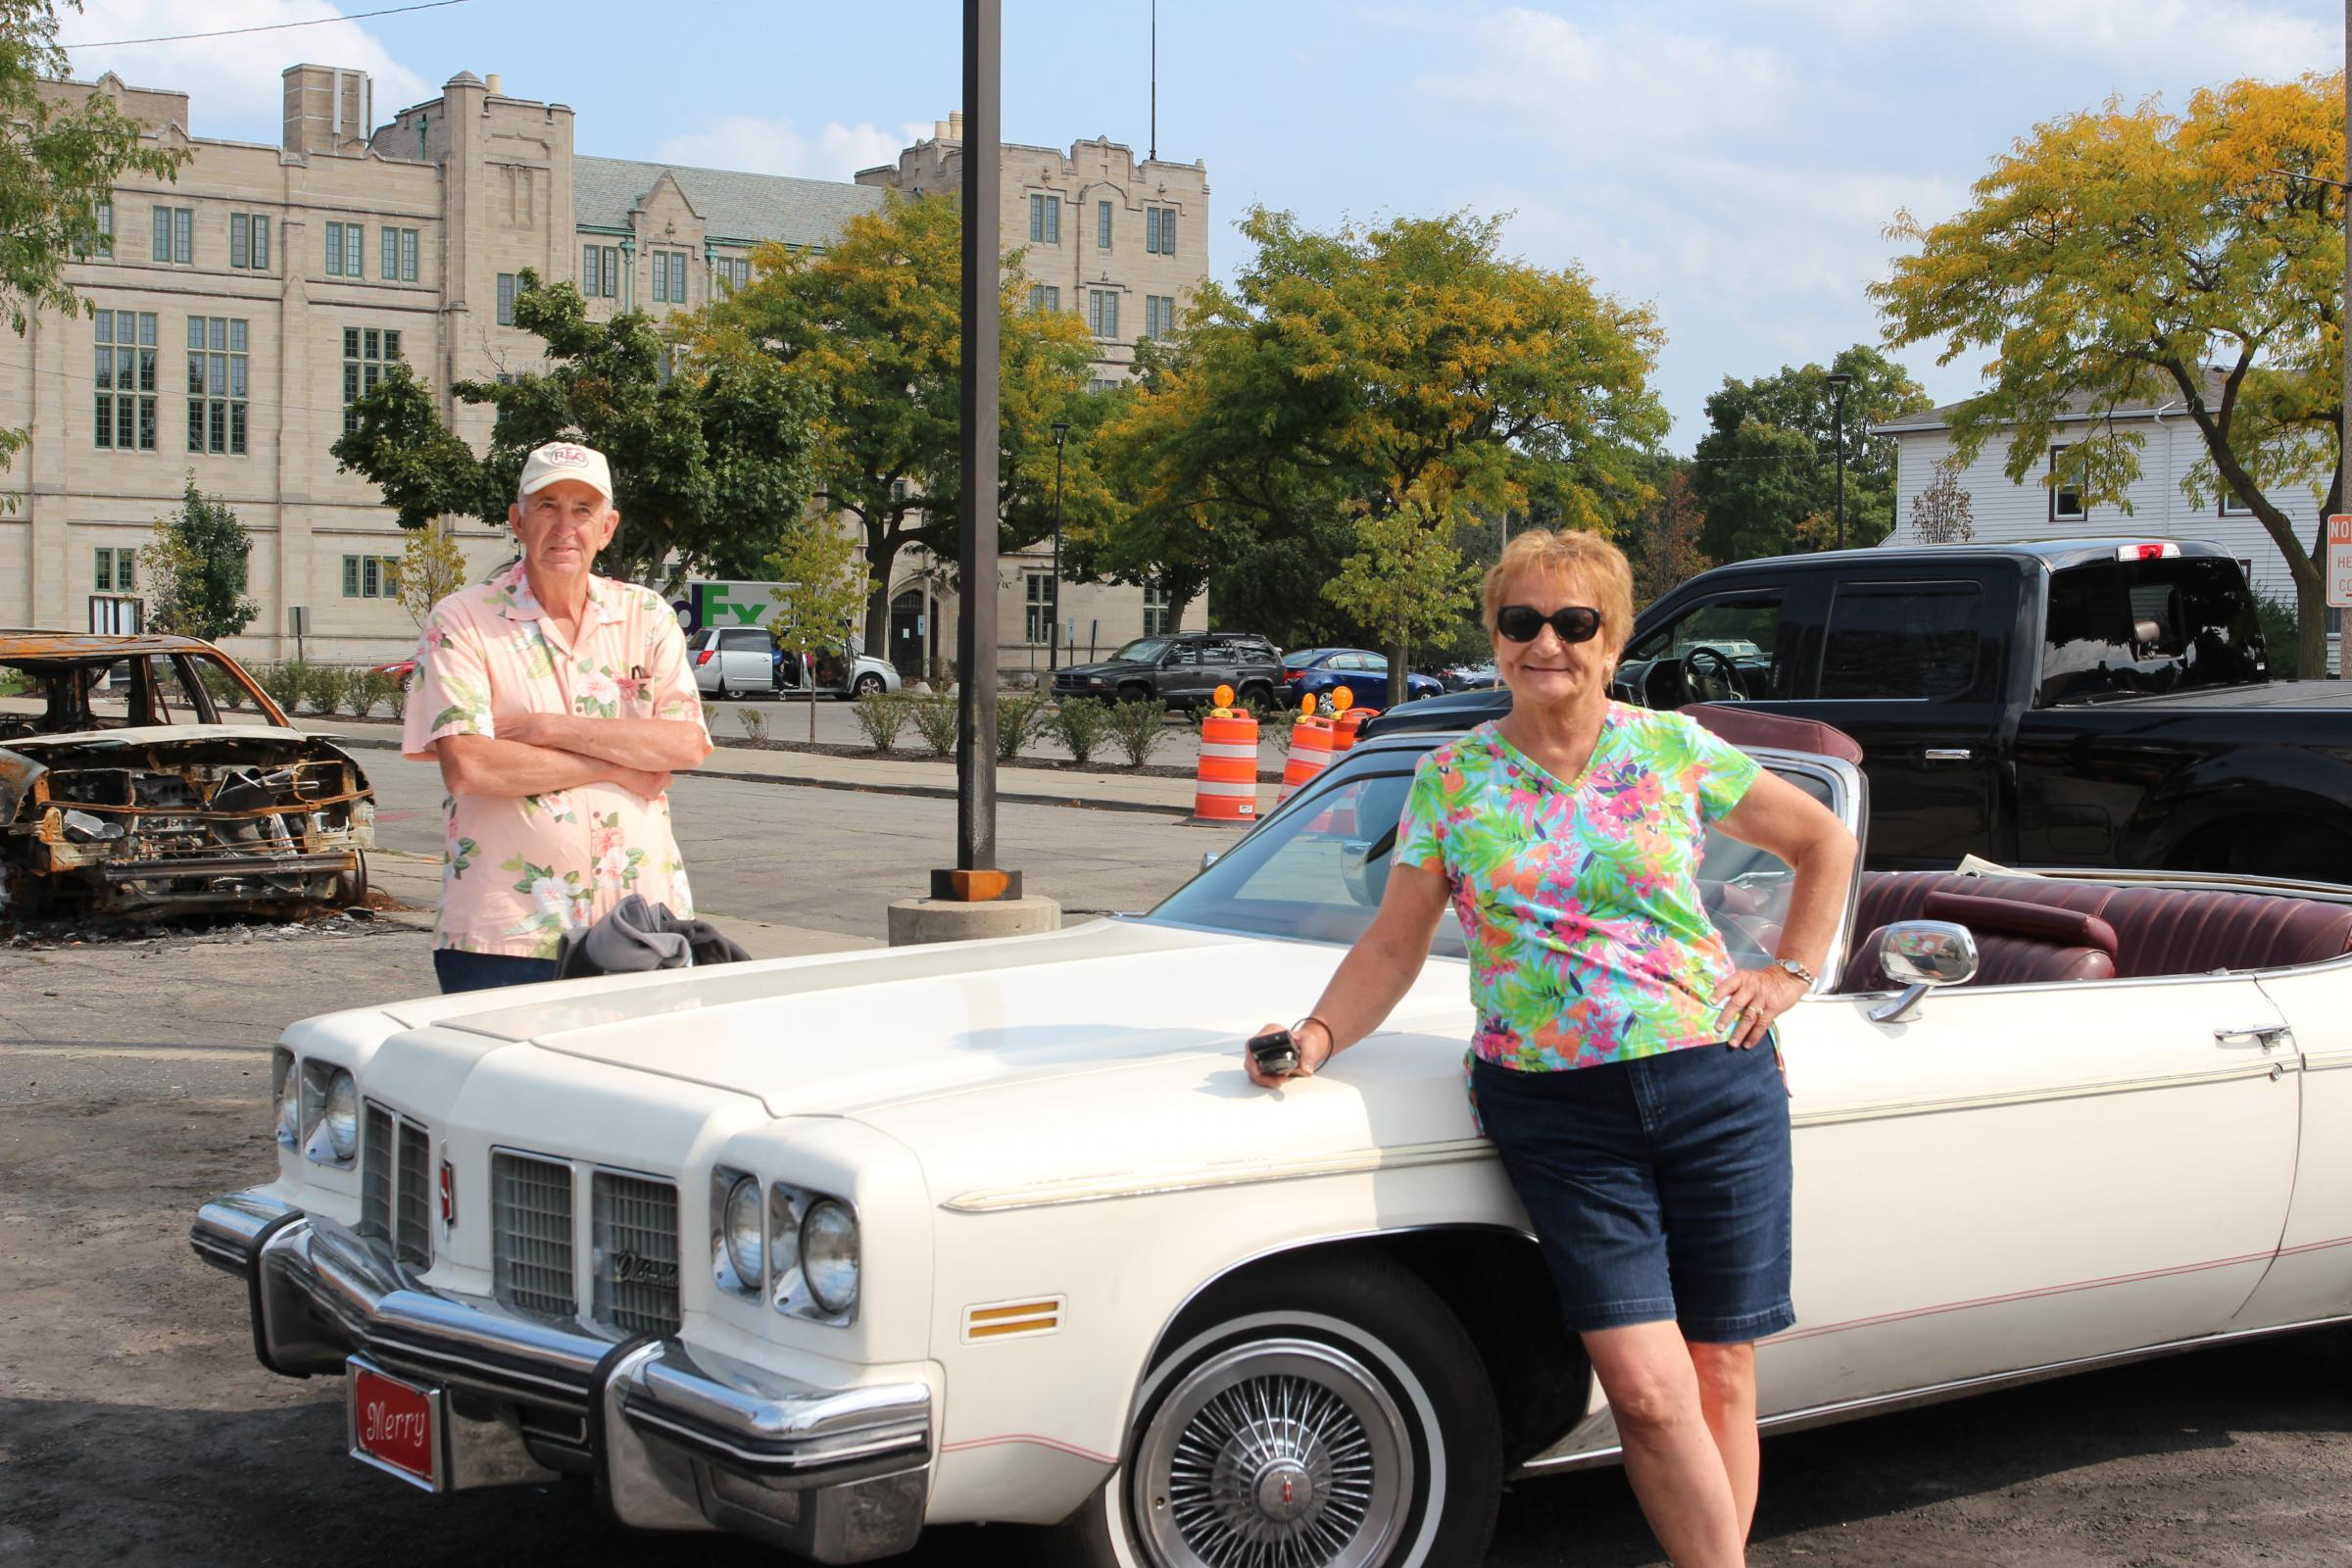 older man crosses arms behind classic car while an older woman smiles in front of it